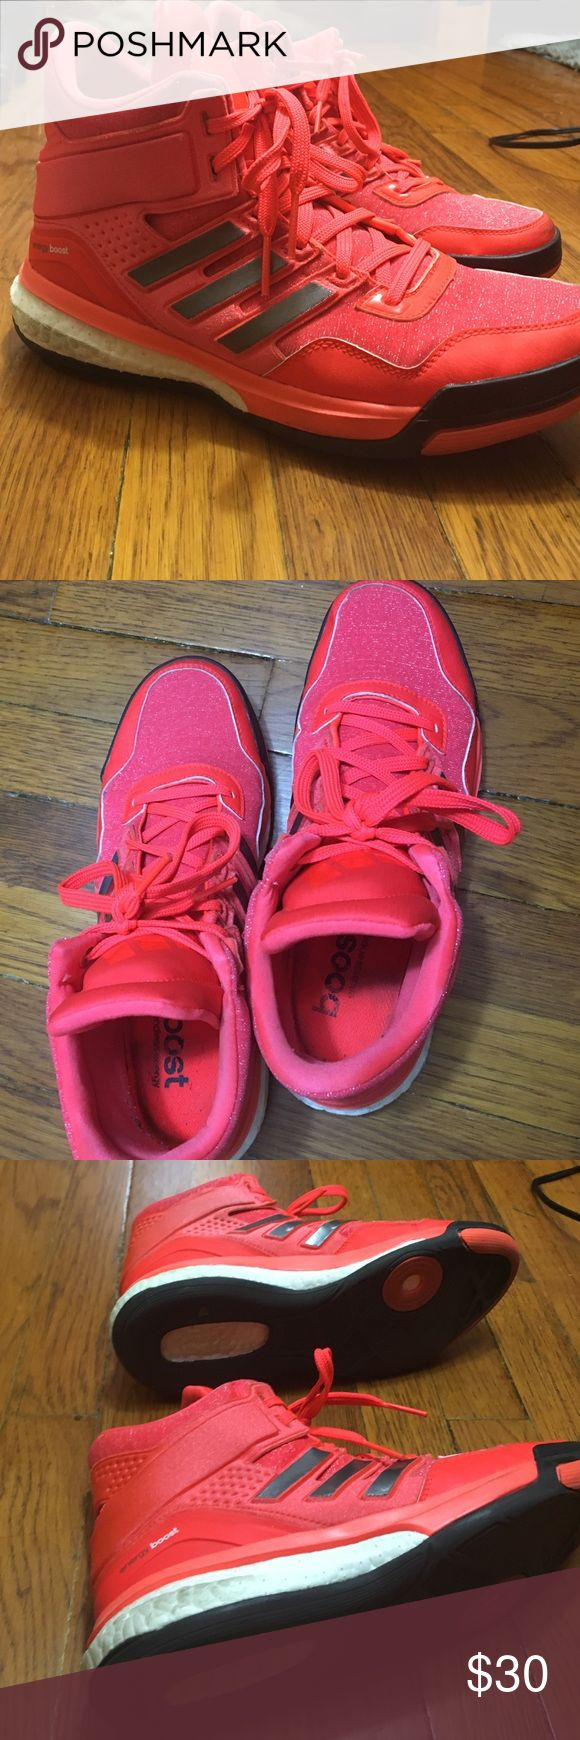 Adidas energy boost neon orange Zumba sneakers Used these for a few Zumba classes. A little too large for me but I love the design. Comfortable sneaker!! All reasonable offers accepted- don't be shy!! ✅✅ Adidas Shoes Sneakers